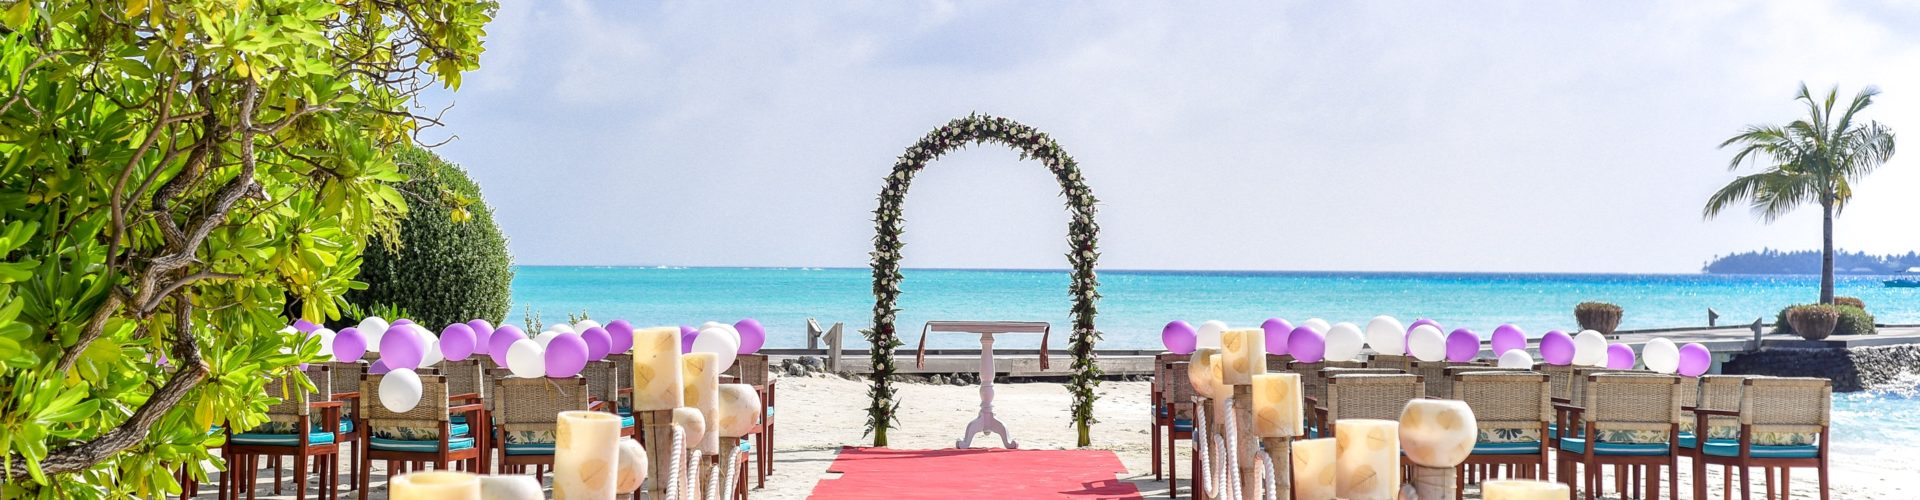 Destination Wedding Checklist